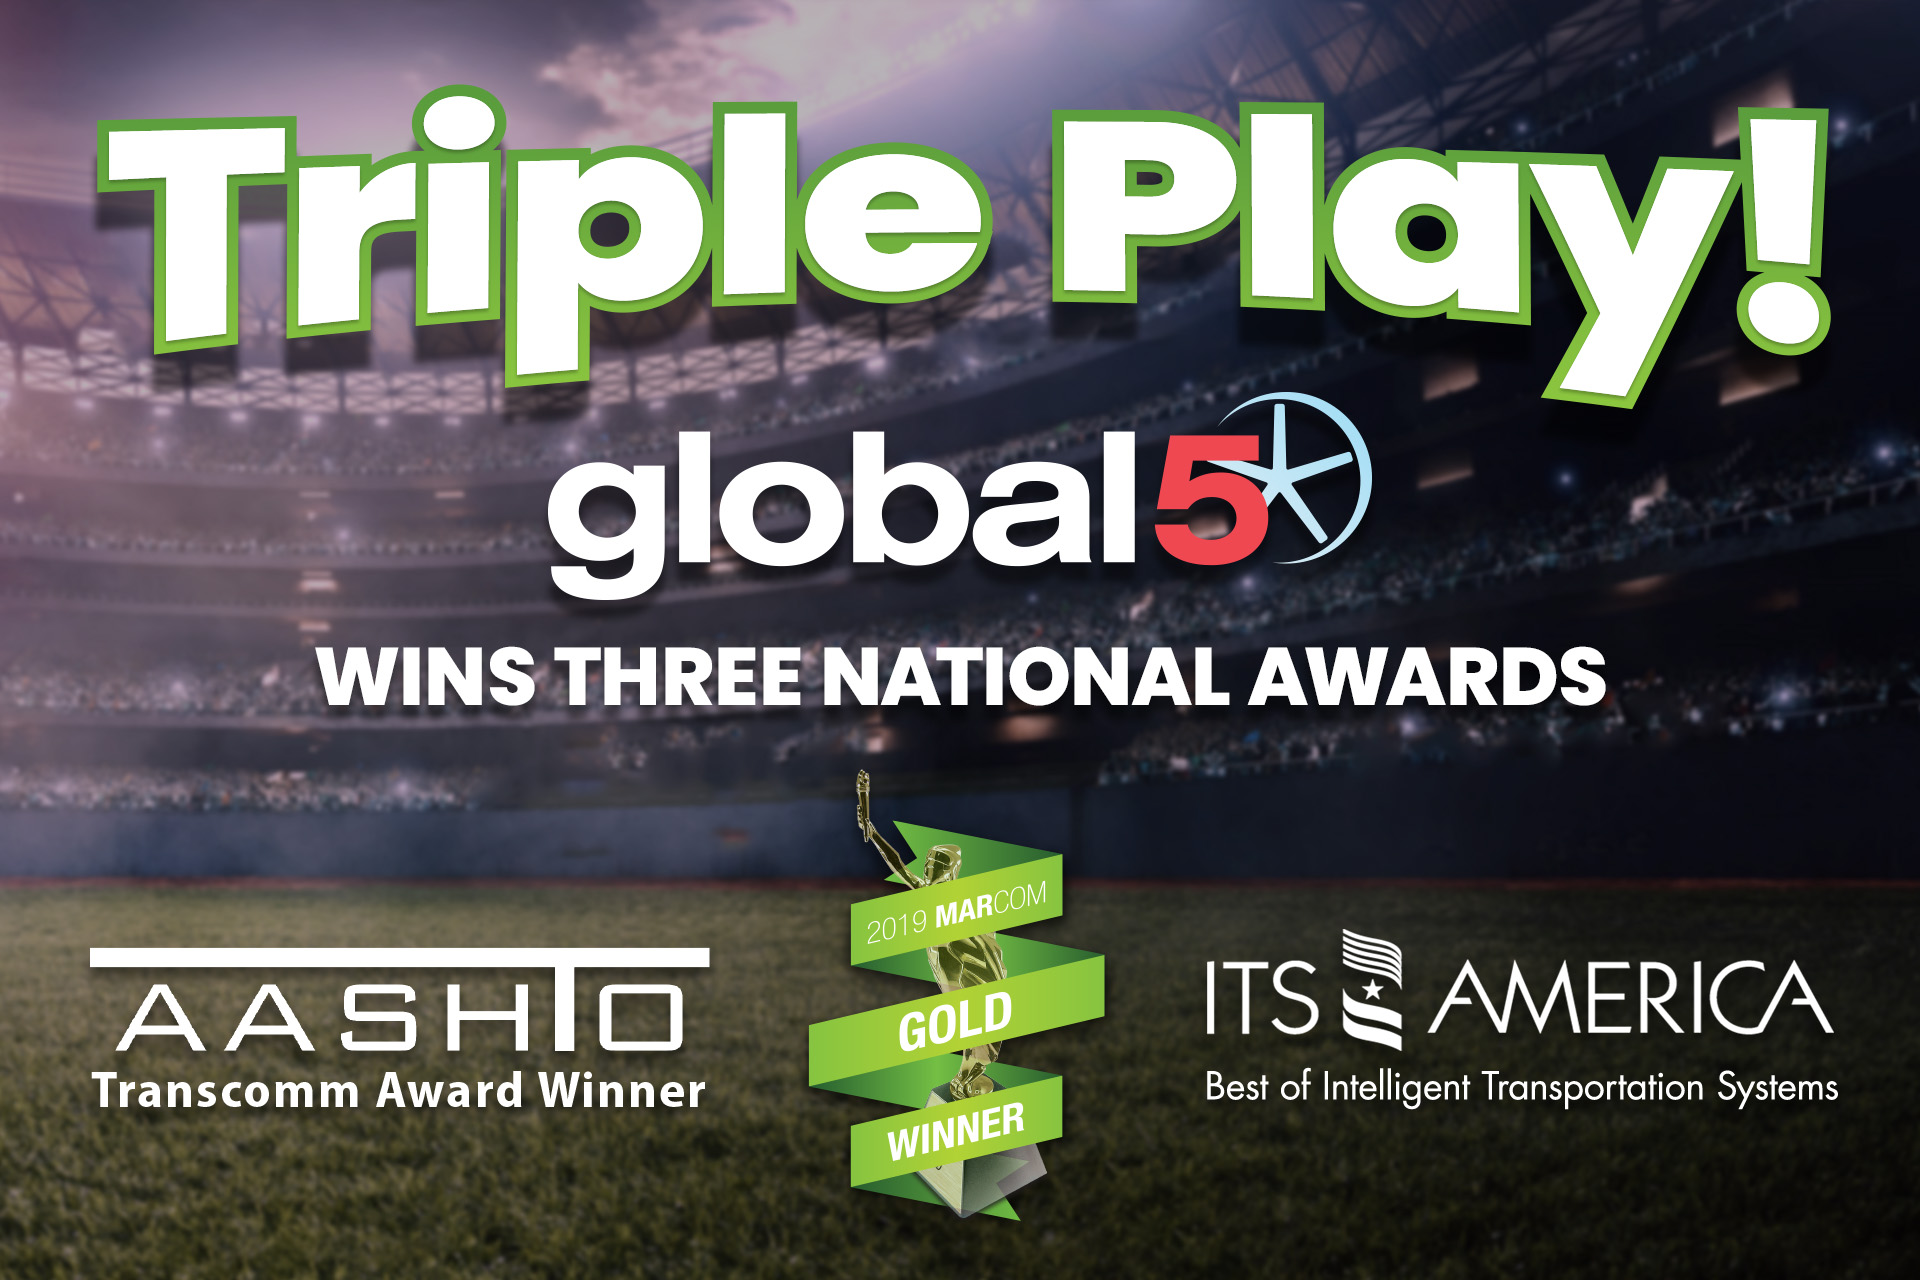 Global-5 Wins Three National Awards